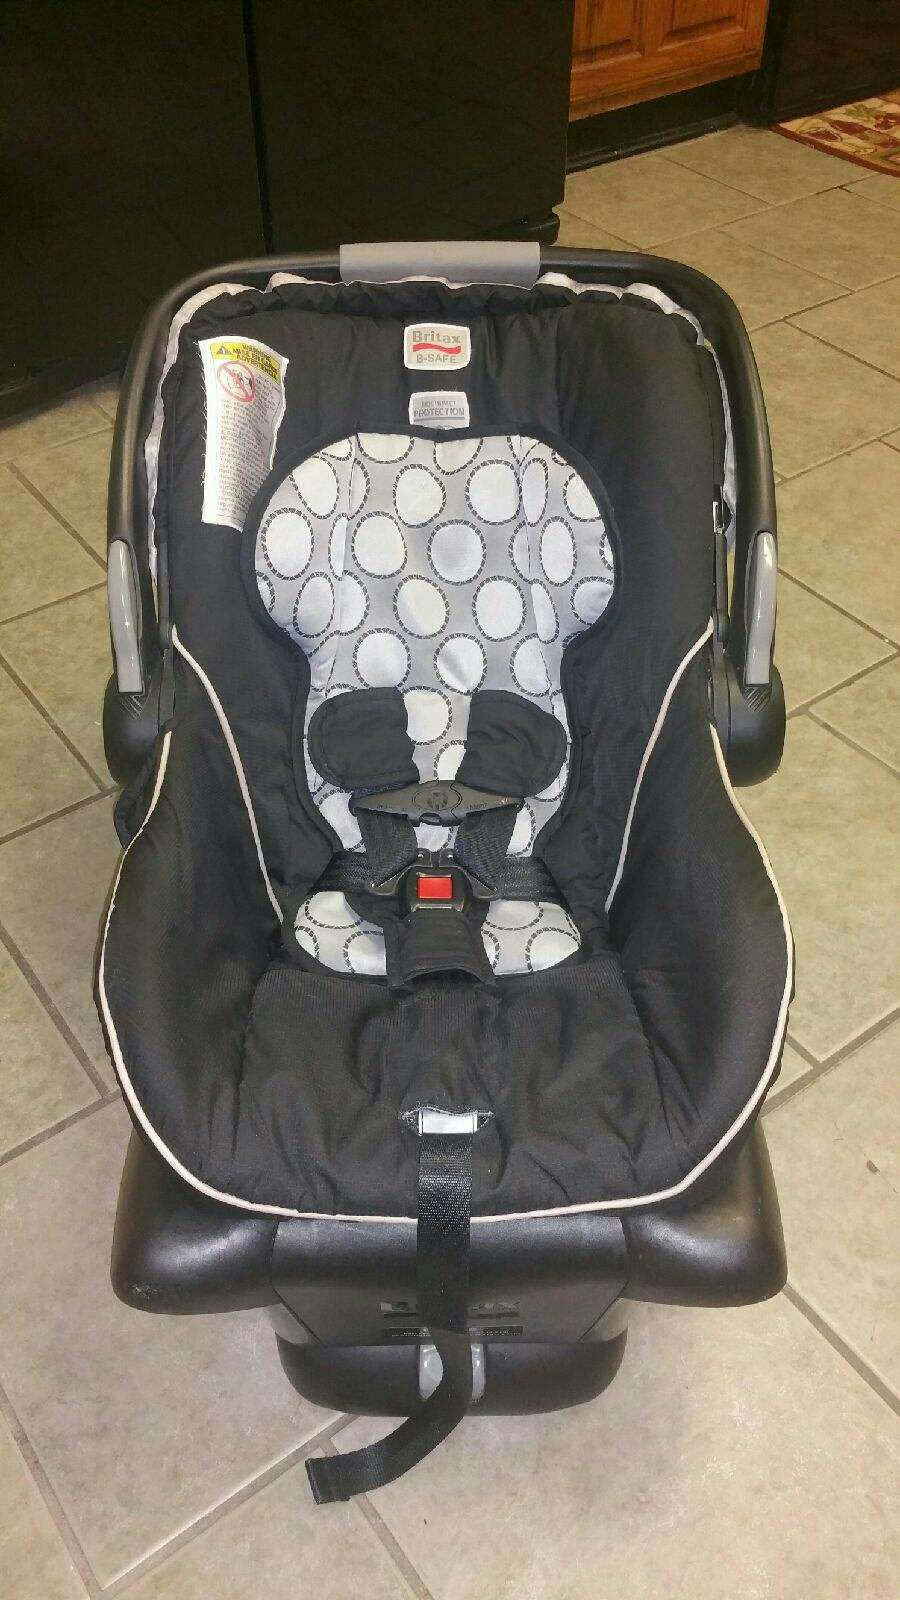 britax b safe infant car seat carseat for sale in grand prairie tx 5miles buy and sell. Black Bedroom Furniture Sets. Home Design Ideas